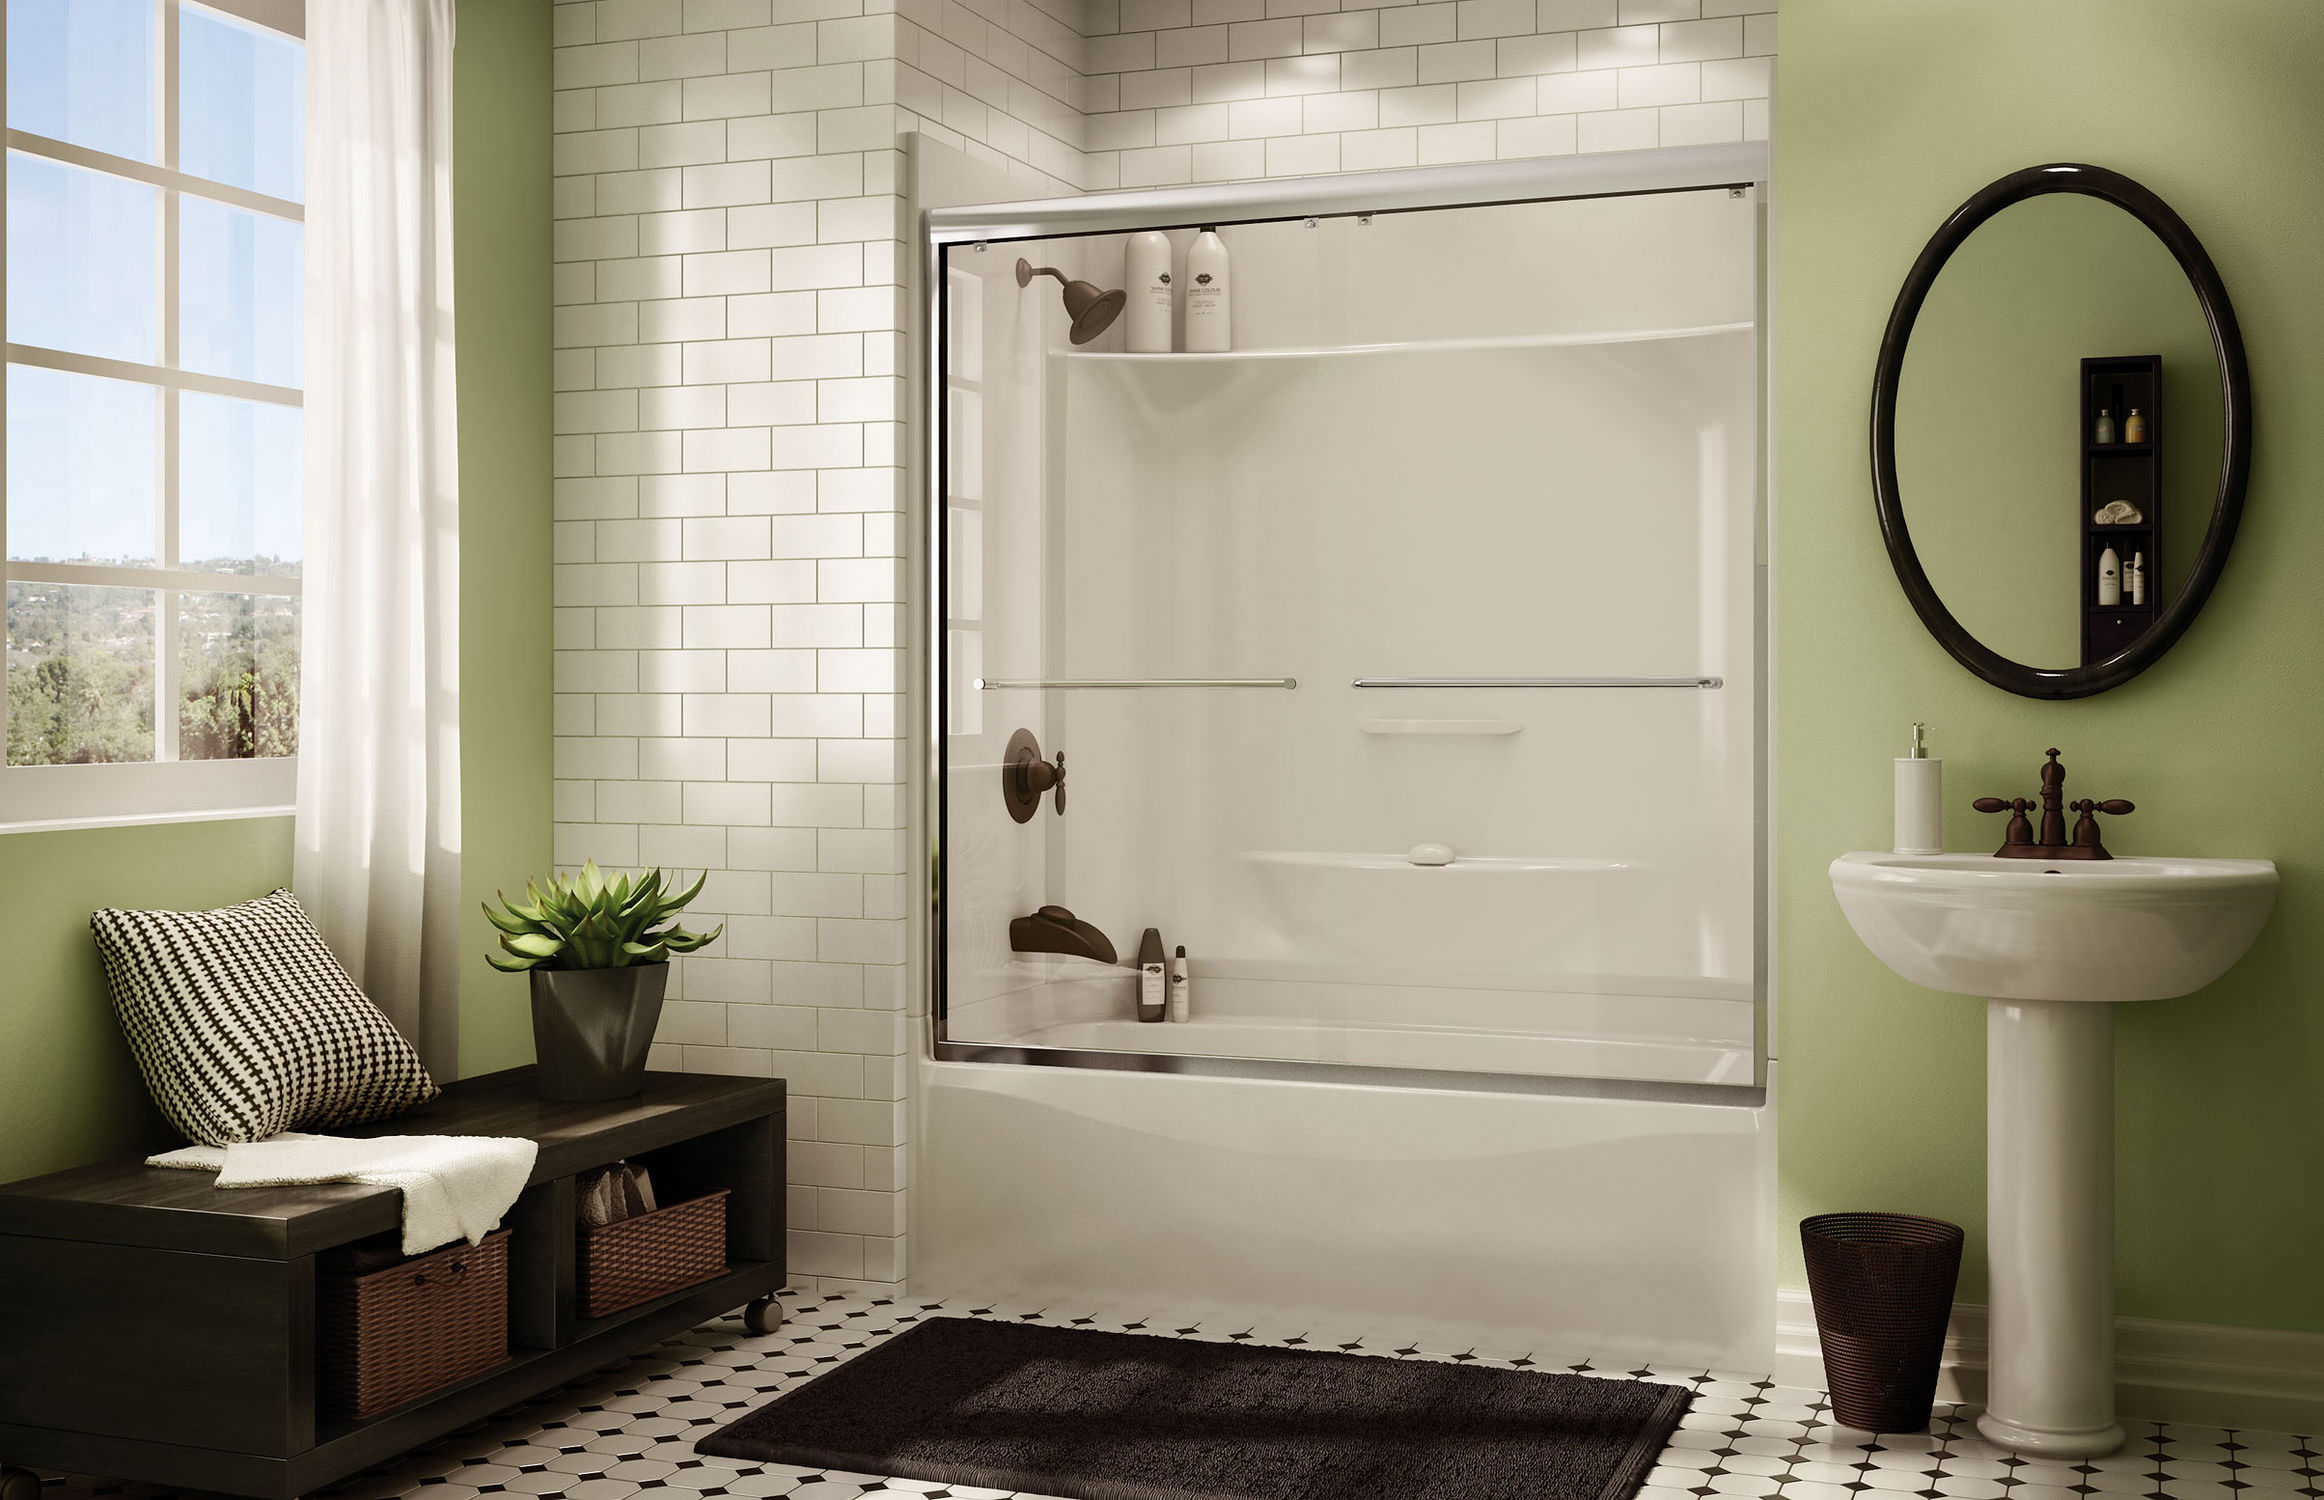 Built in bathtub shower combination   rectangular   acrylic KDTS 3260 MAAX  bathroom  Built in bathtub shower combination   rectangular   acrylic   KDTS  . Maax Tub Shower Combo. Home Design Ideas